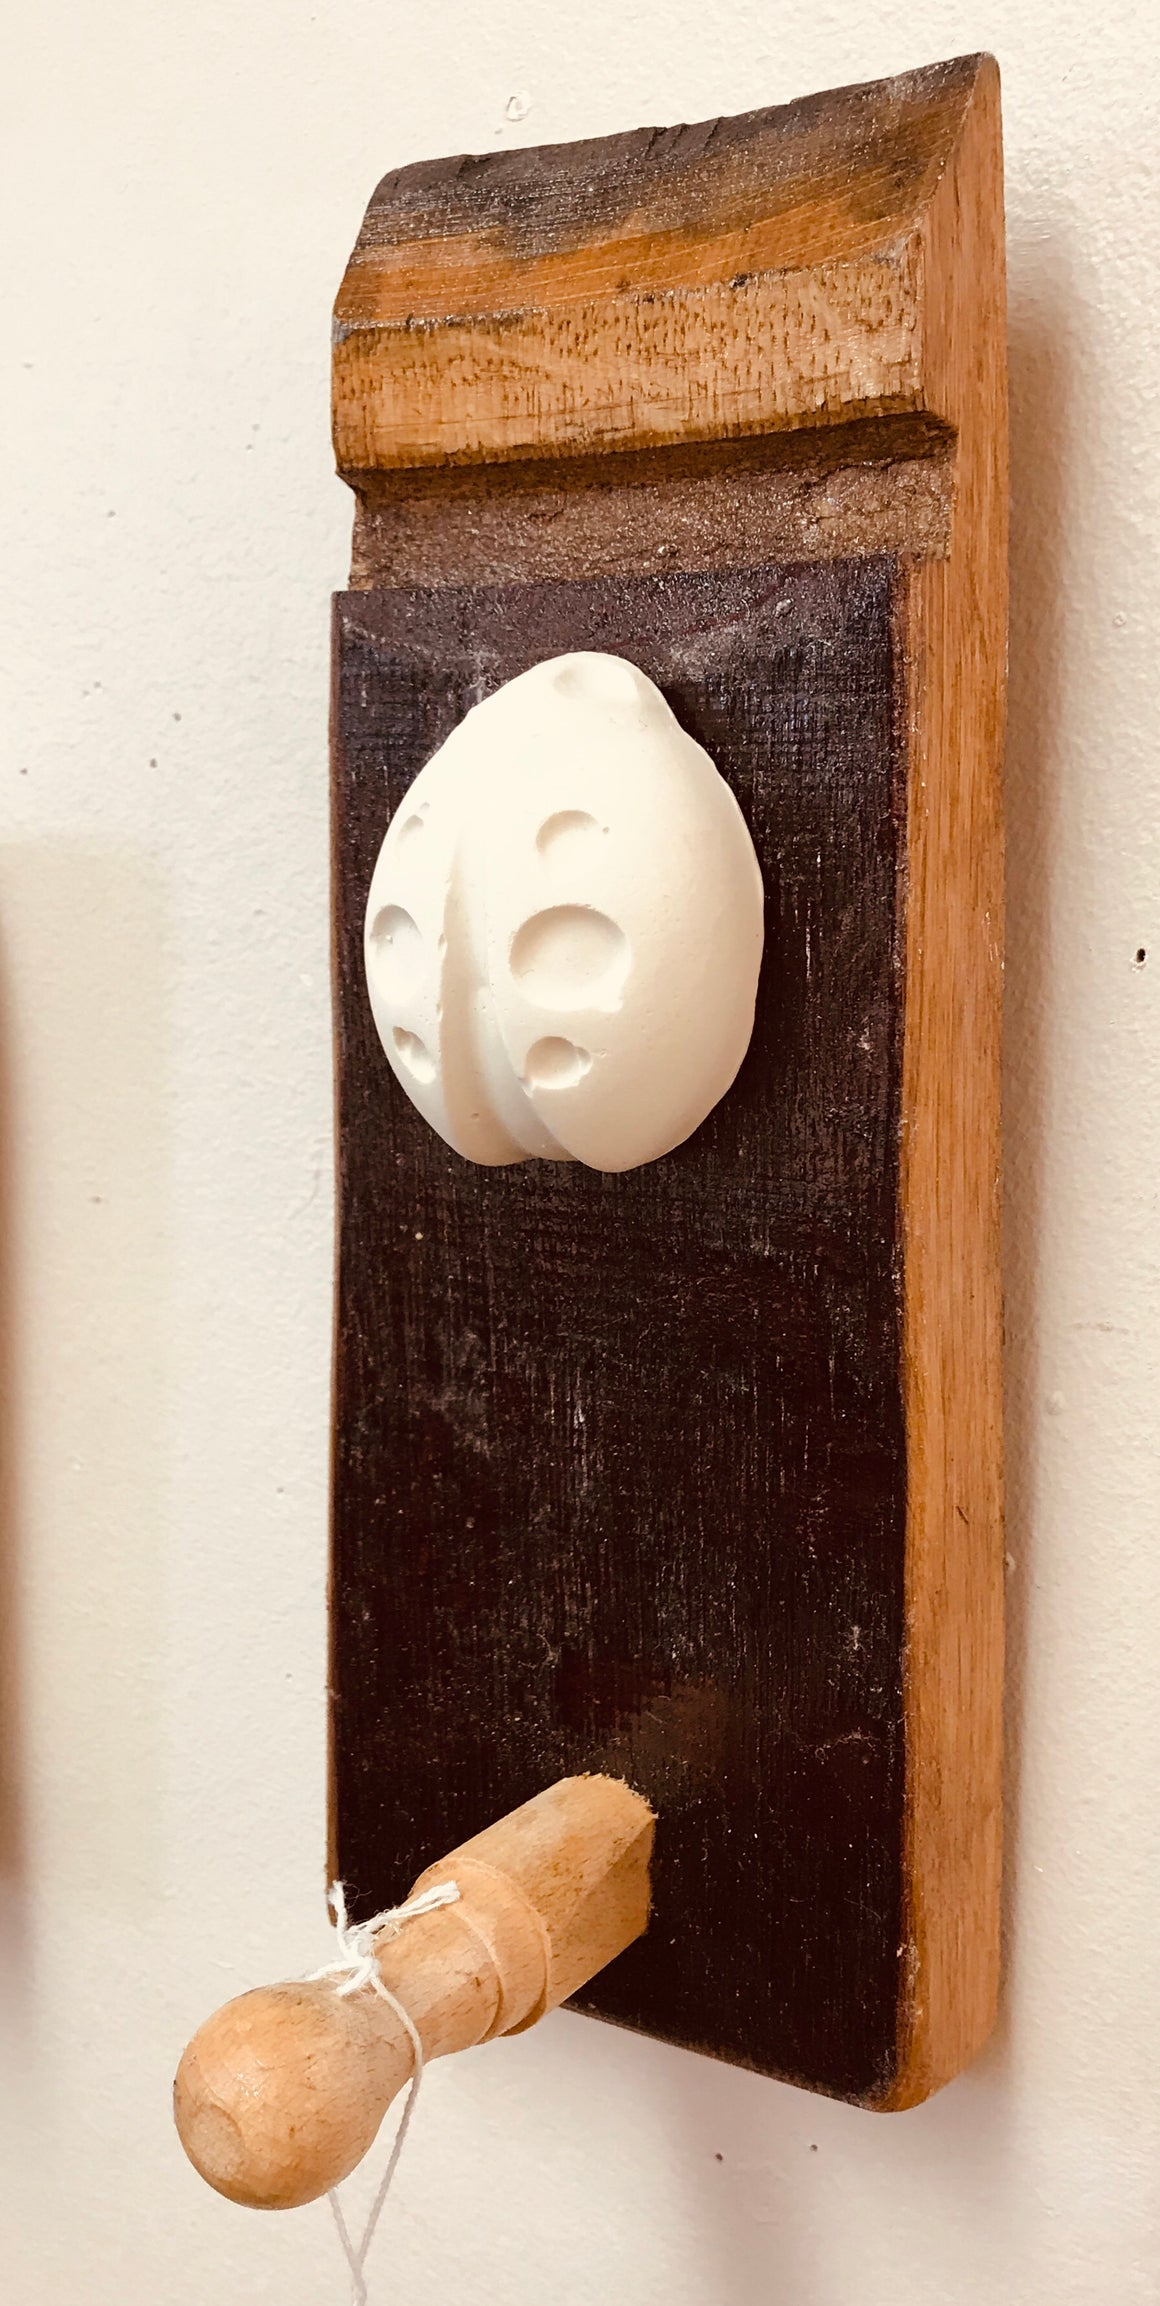 Stave hook with plaster cast insect motif. Ladybird.